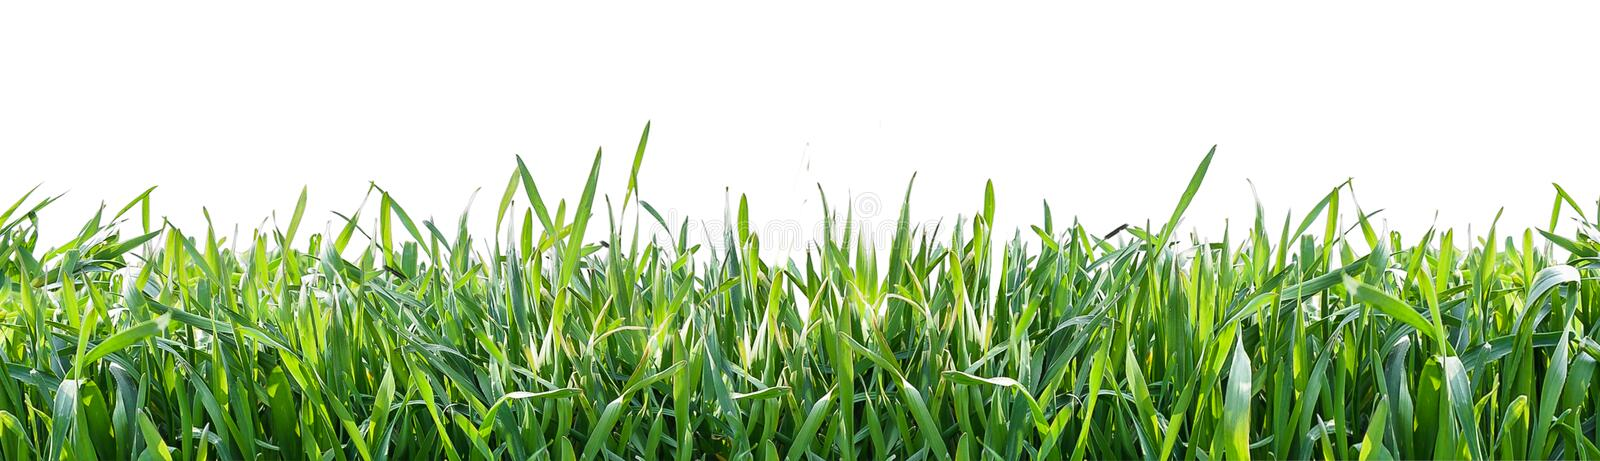 6 033 564 Grass Photos Free Royalty Free Stock Photos From Dreamstime